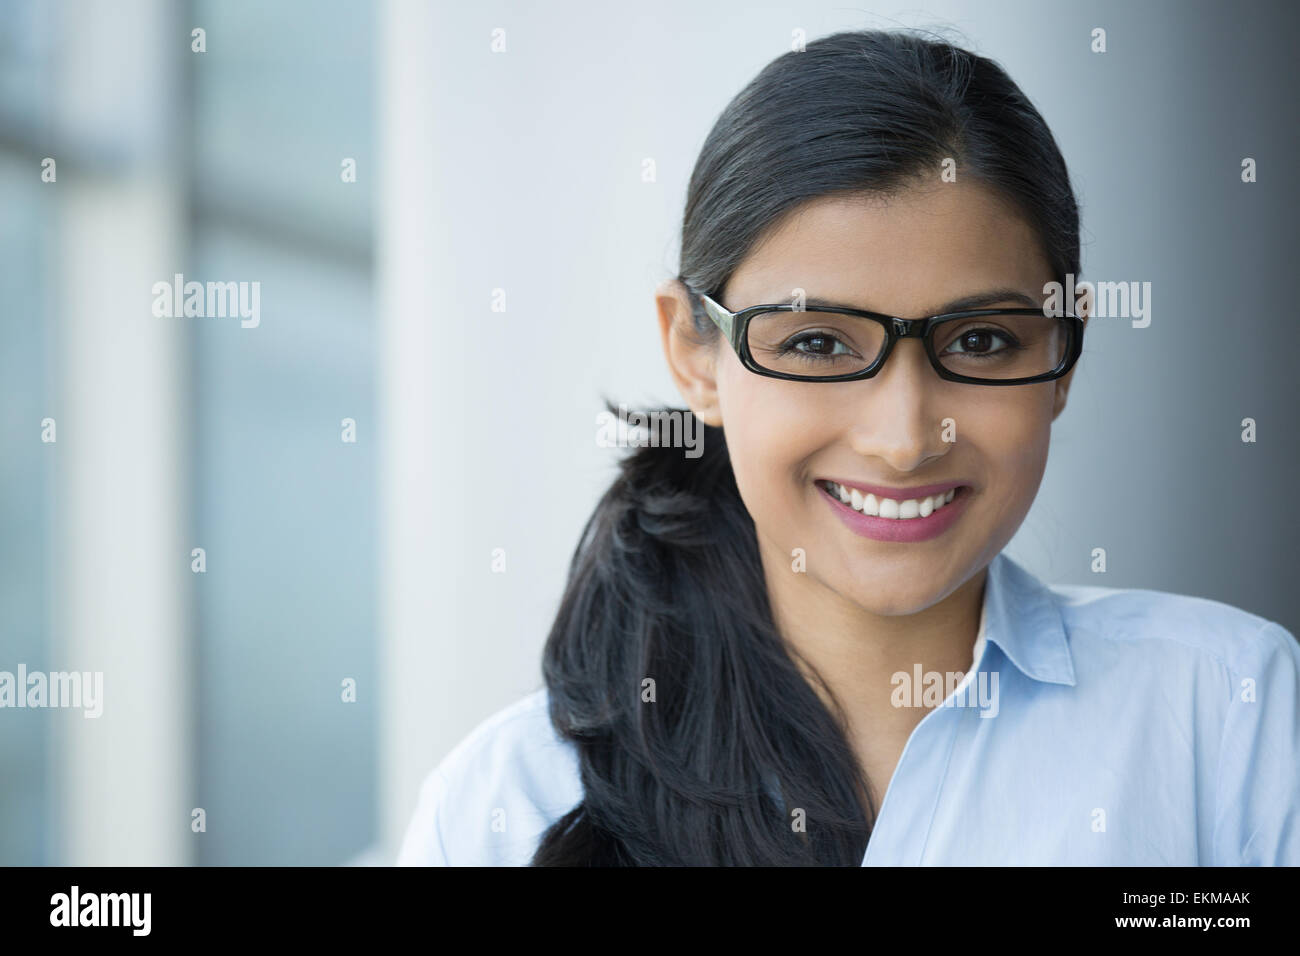 Closeup portrait, young professional, beautiful confident adult woman in blue shirt, with black glasses, smiling - Stock Image